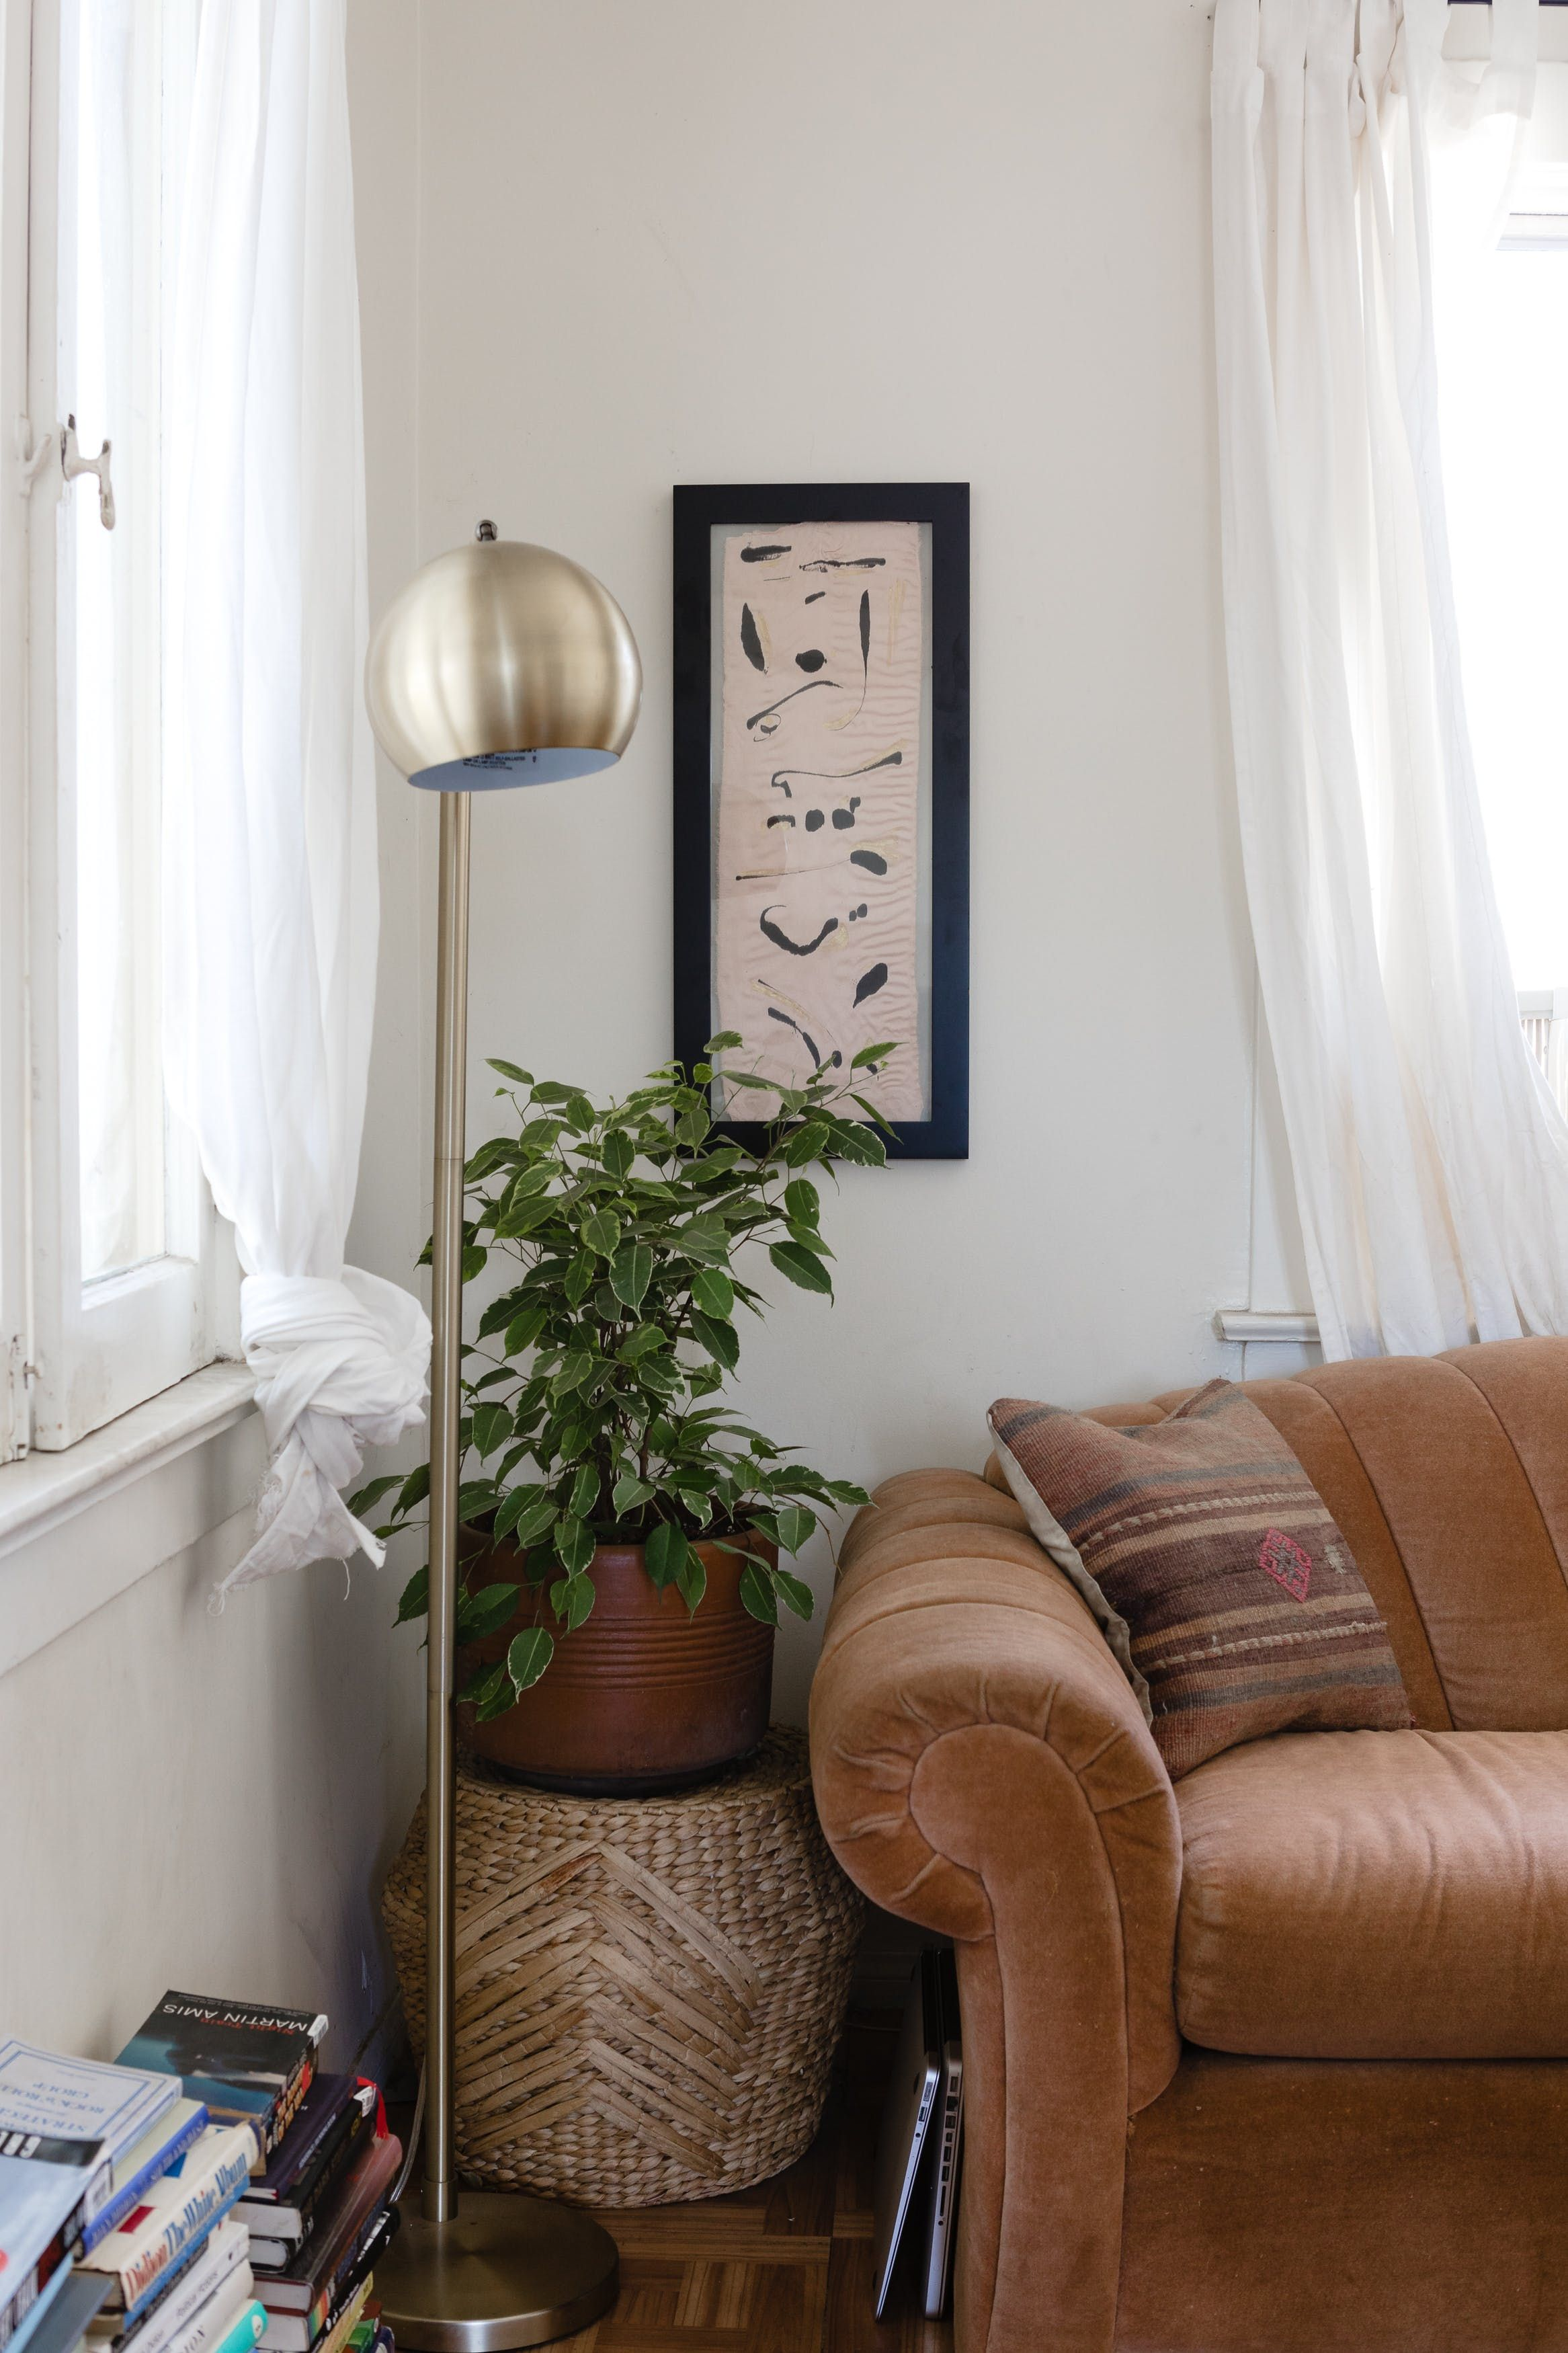 Steal These Rental Decorating Hacks From a '70sInspired